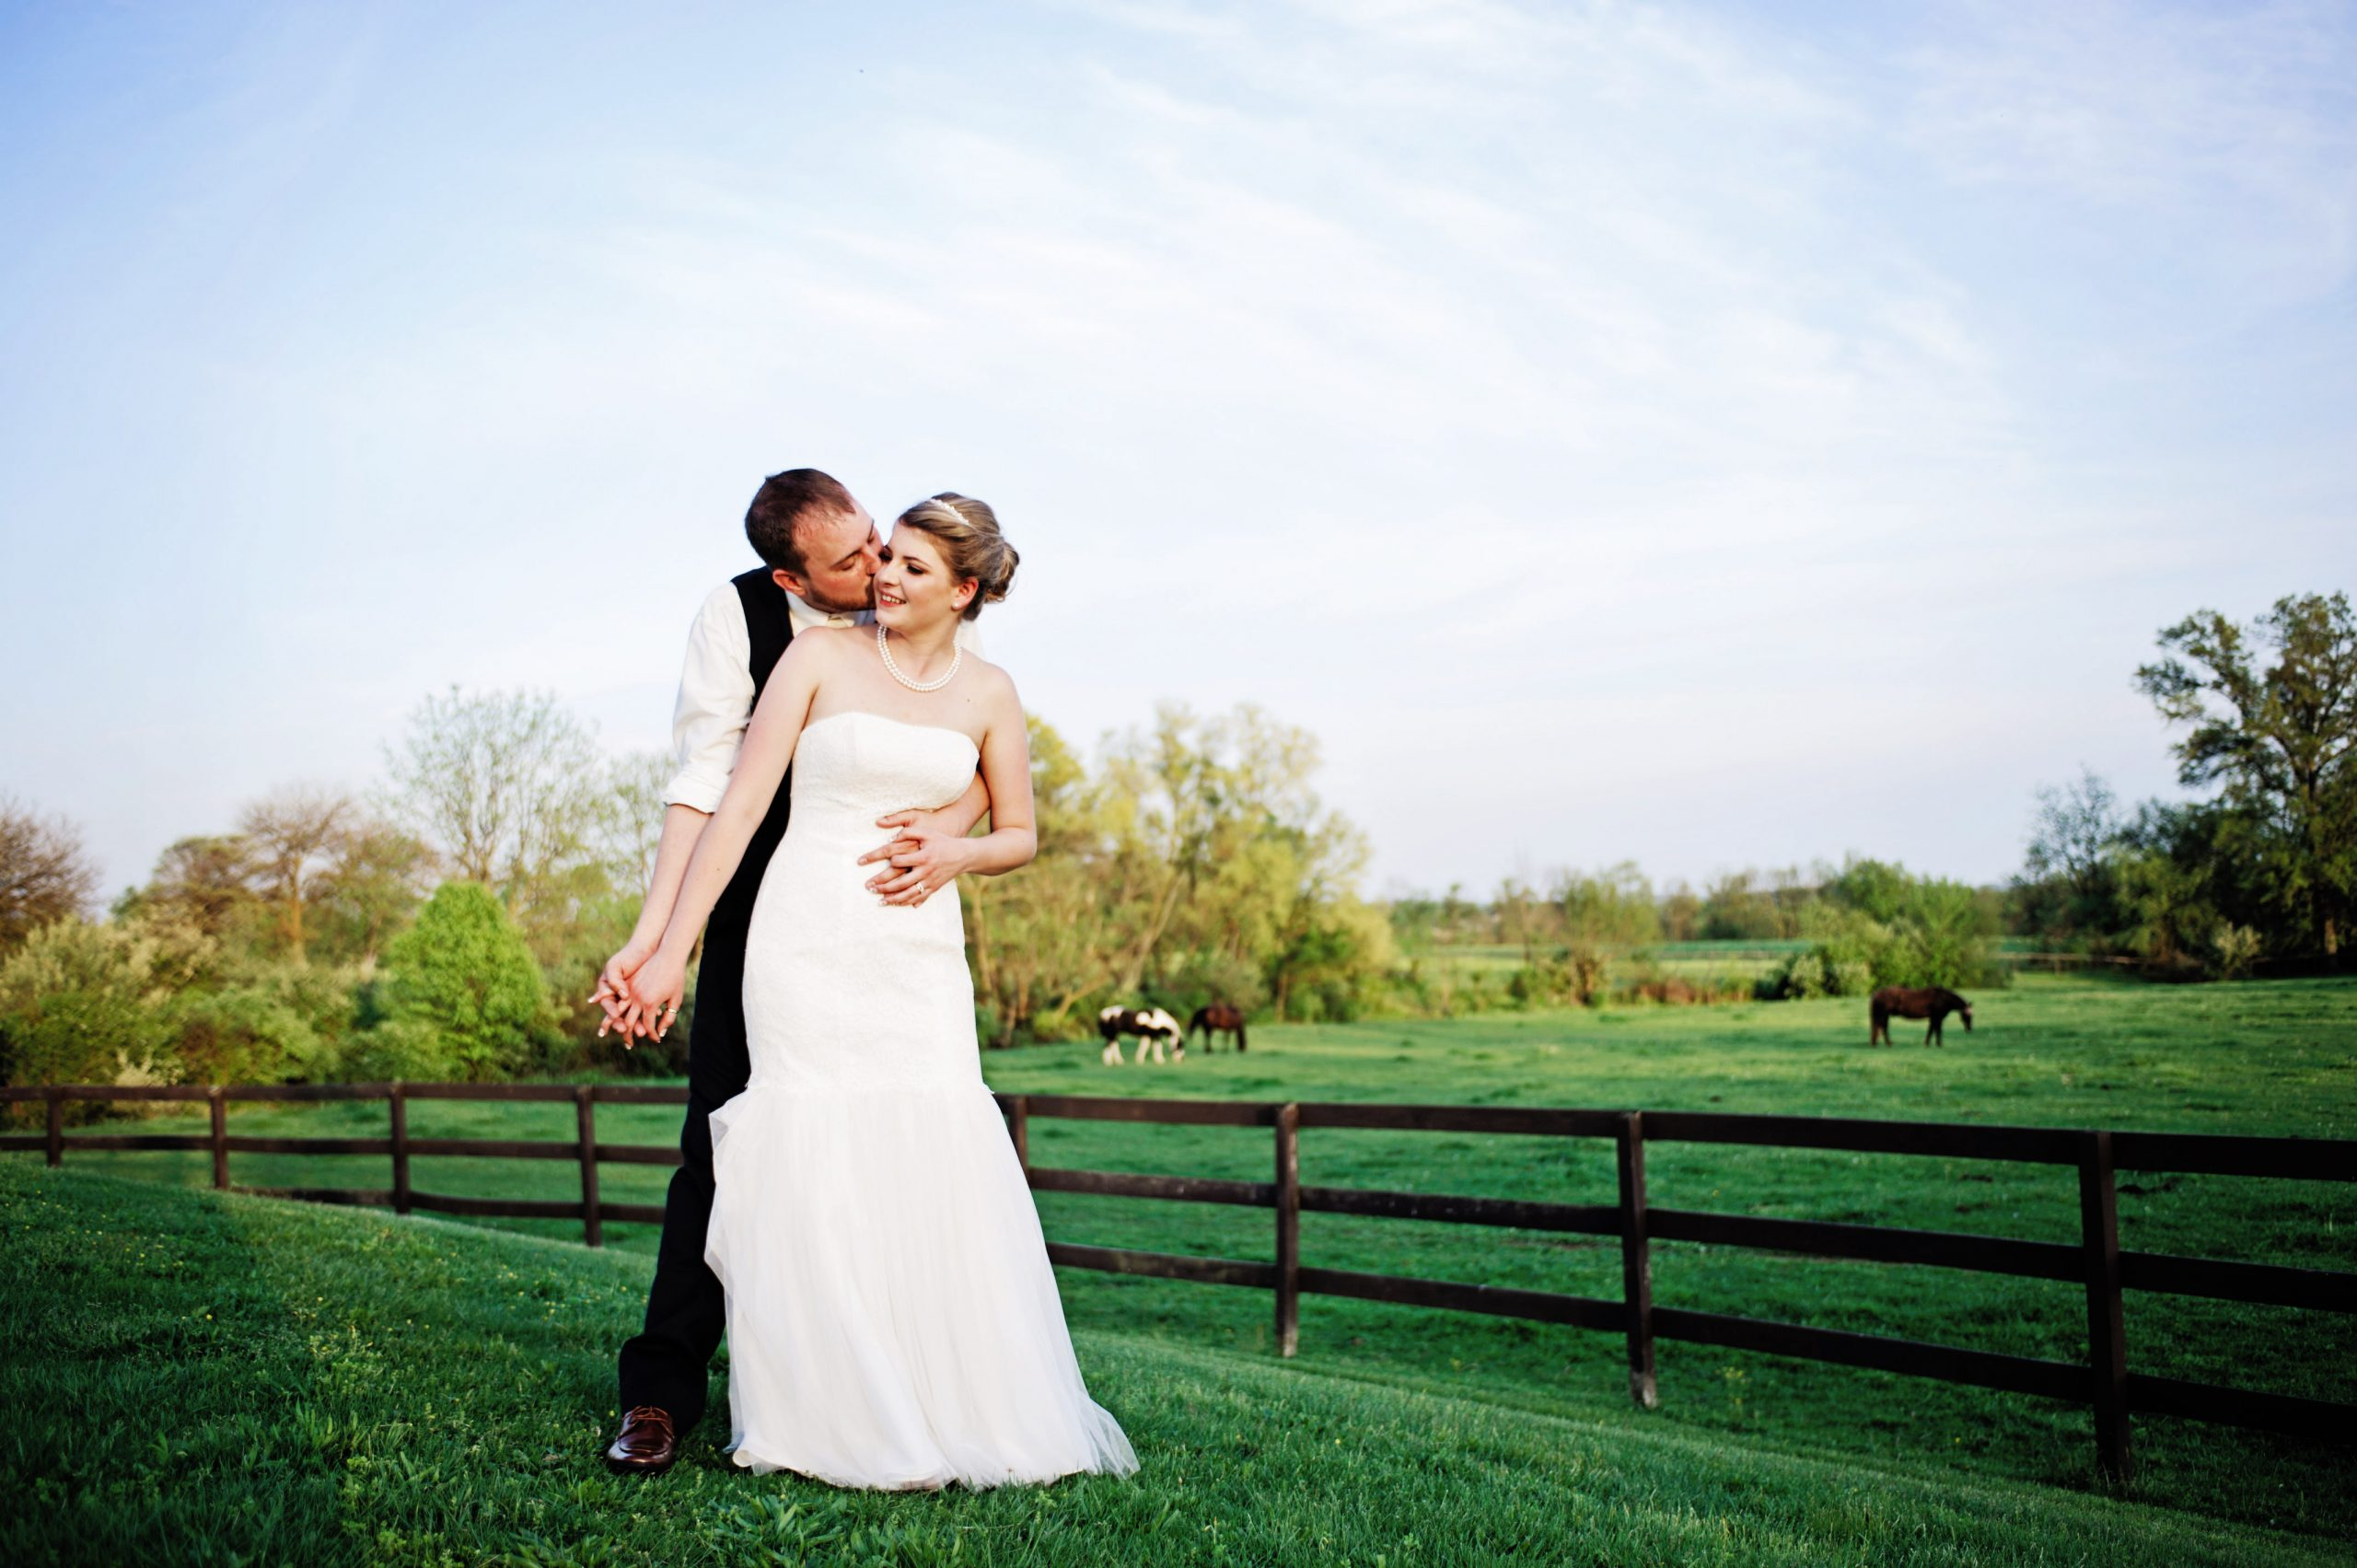 Lakeview Farms of york, PA offered a fairytale-like wedding venue for Kady and Ricky this past Spring. The two happily pose in the forefront of the property's pastures littered with horses. Featured on Dream Weddings.